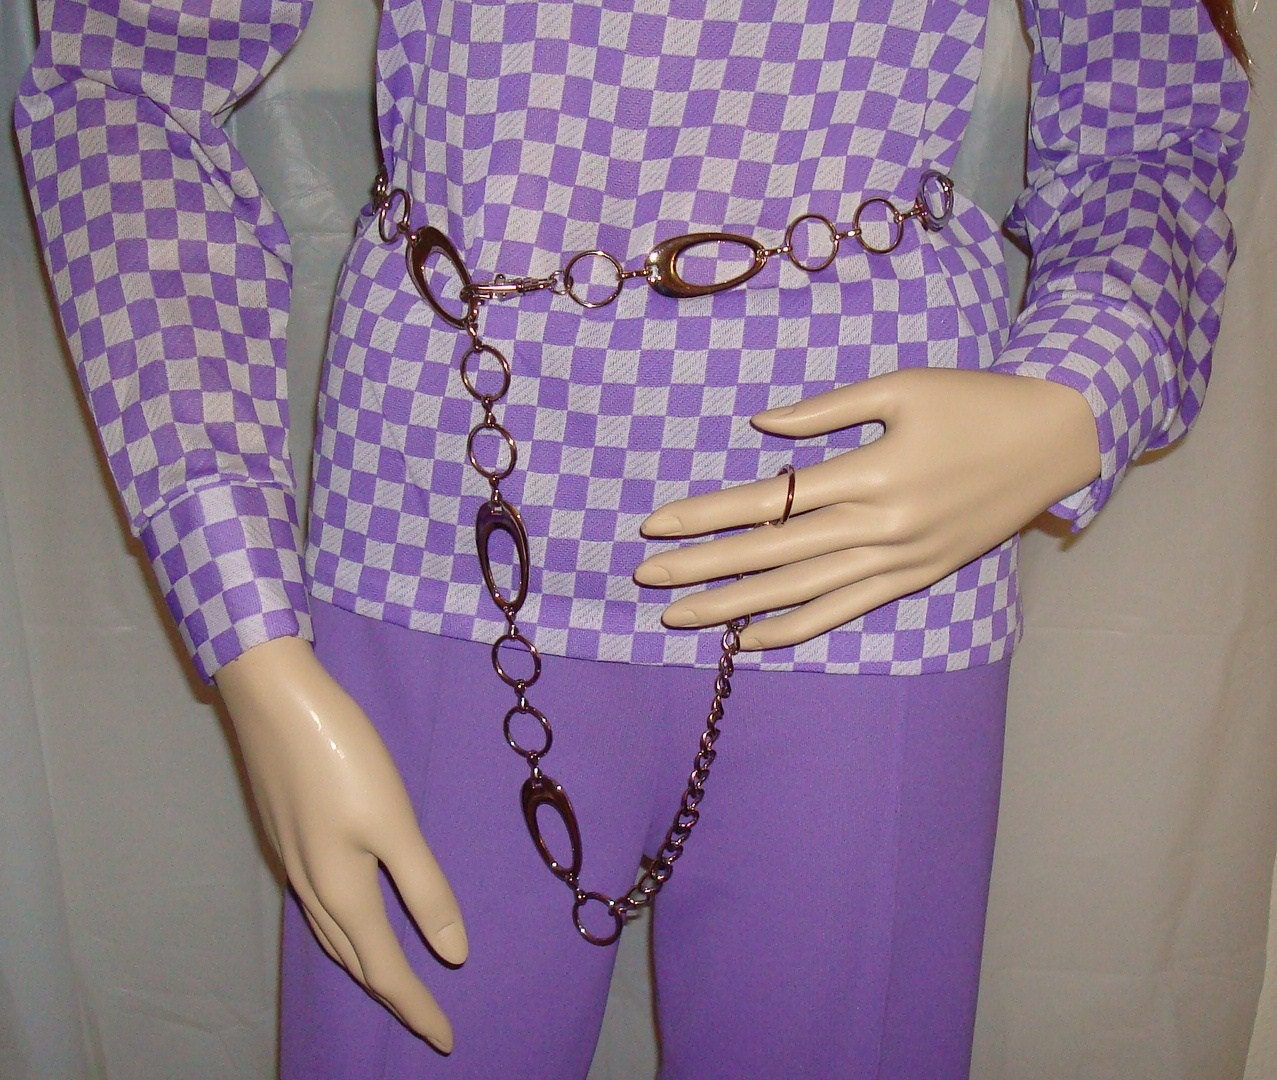 Vintage Sears Purple Polyester Pantsuit and Chain Belt - Vtg Size 12/14